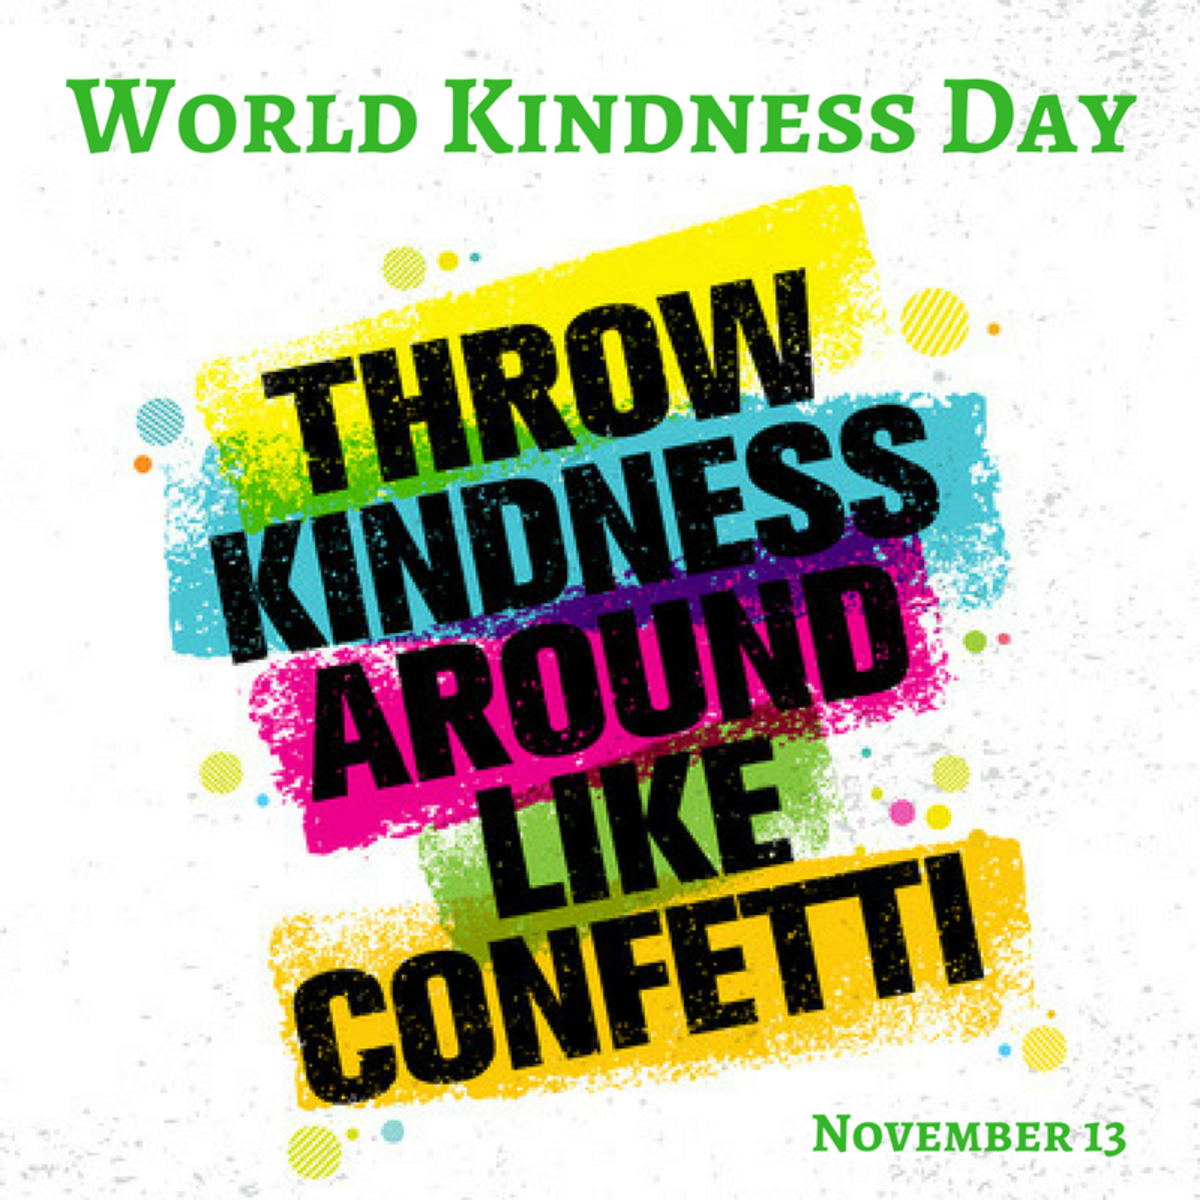 World Kindness Day:  Yes, The World Needs More Of That